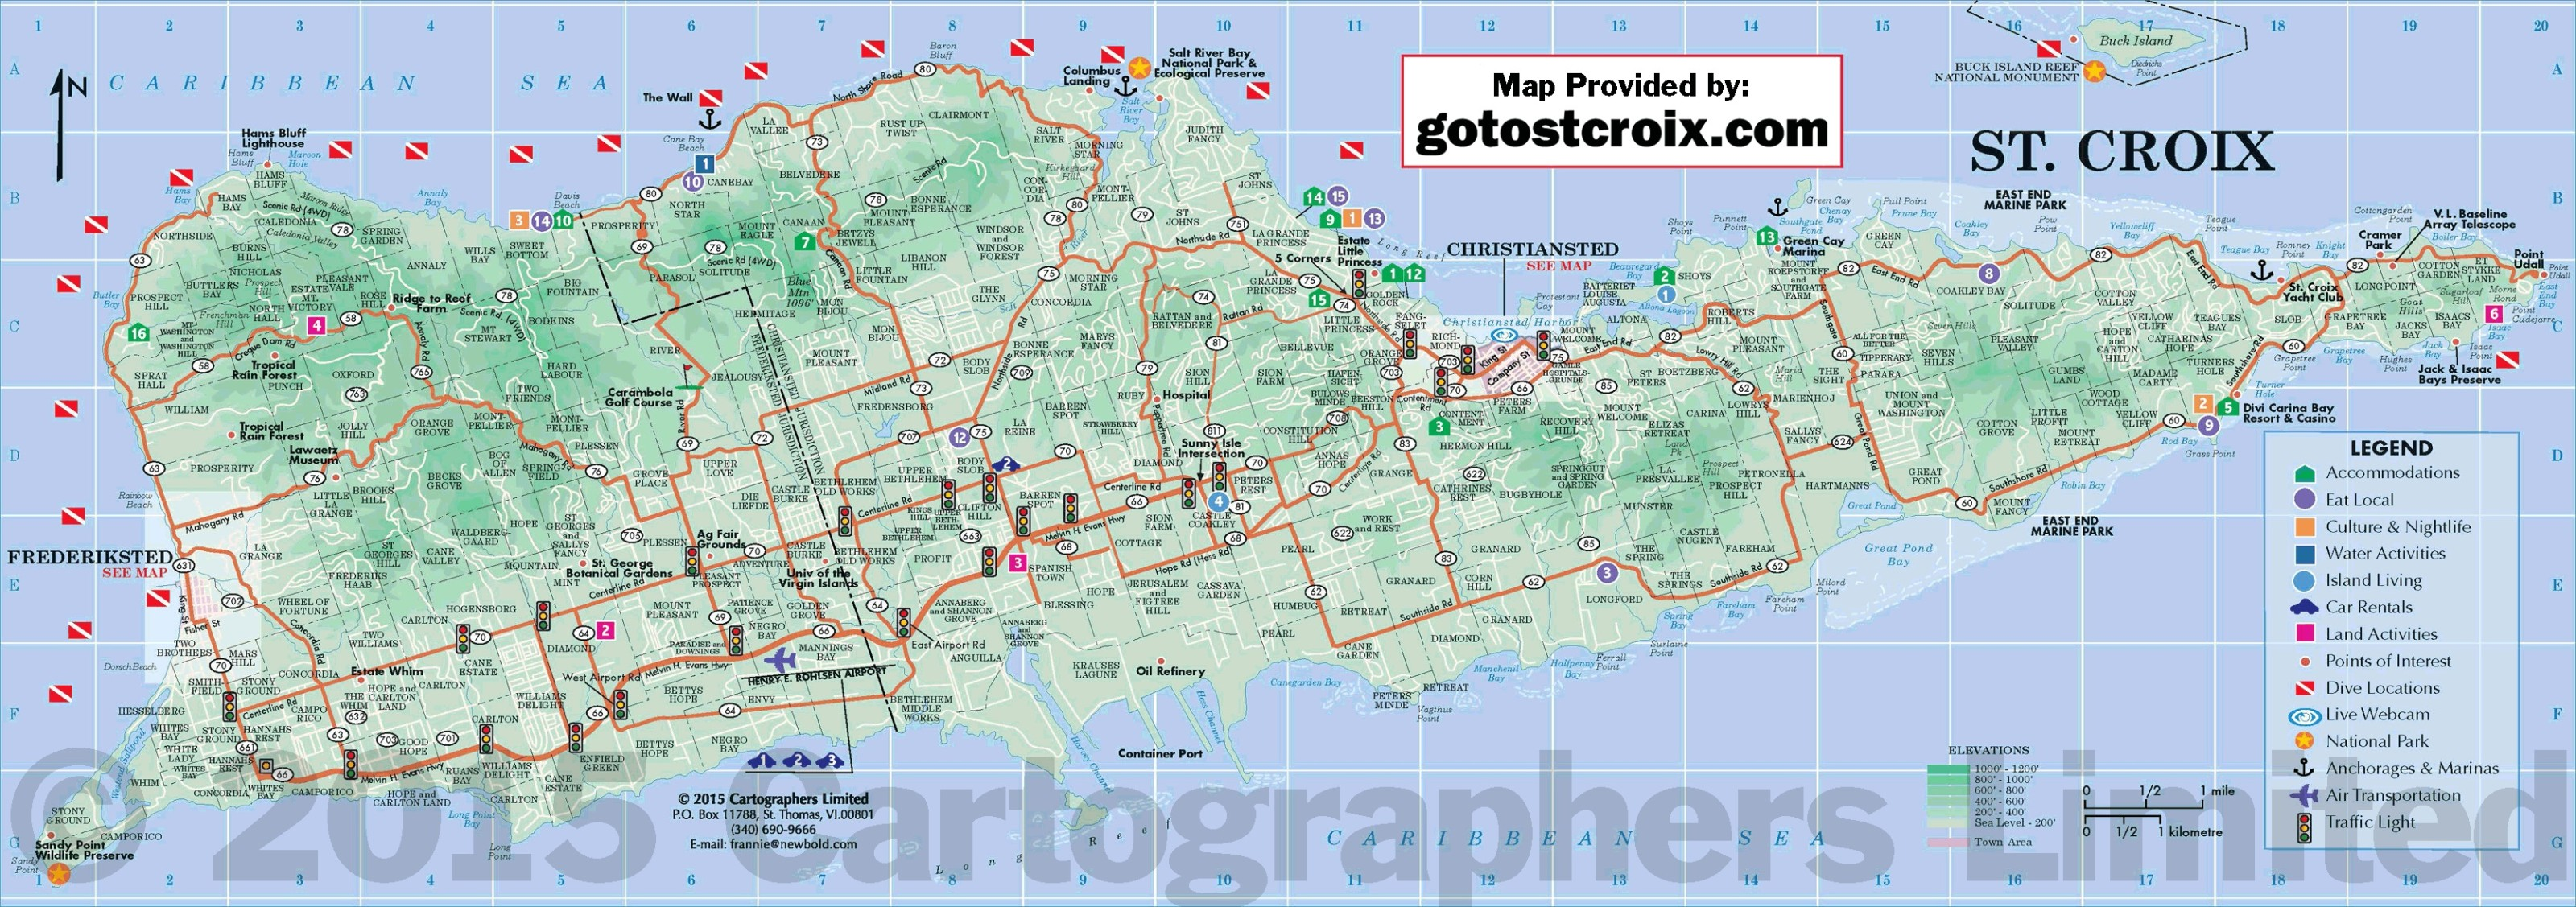 where is st croix located?